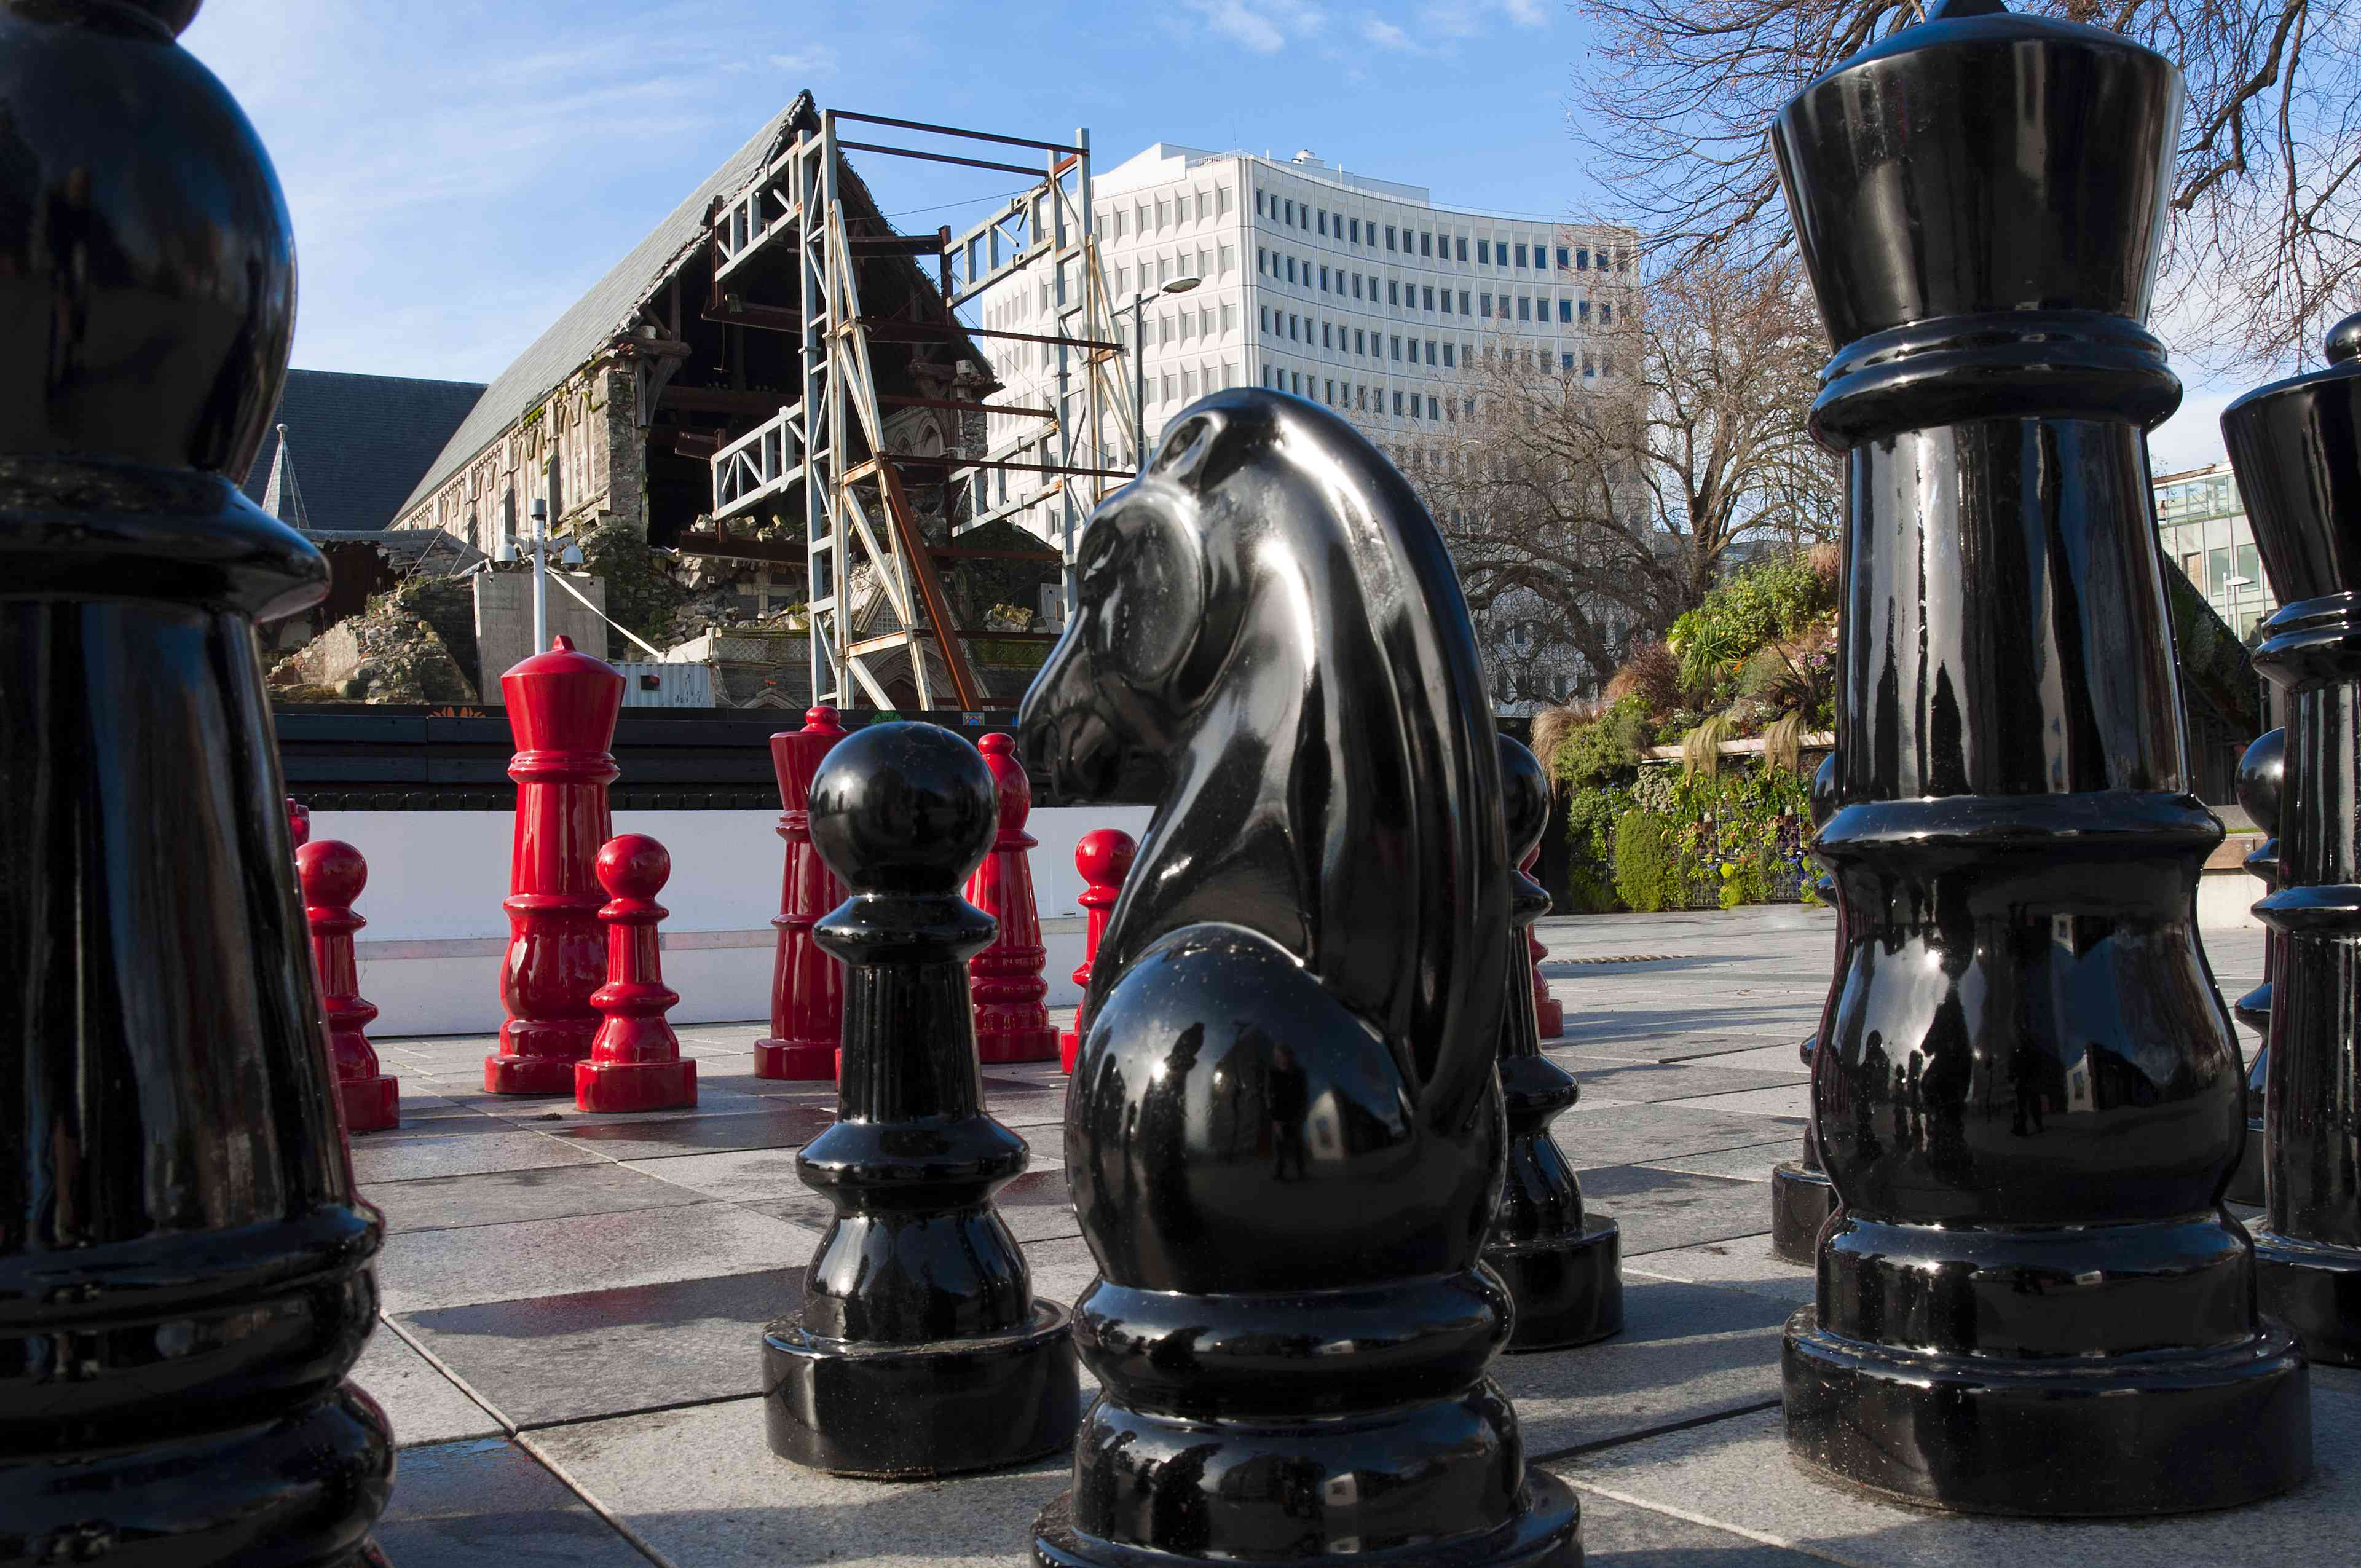 large outdoor chess pieces with scaffolding around an old church building in background